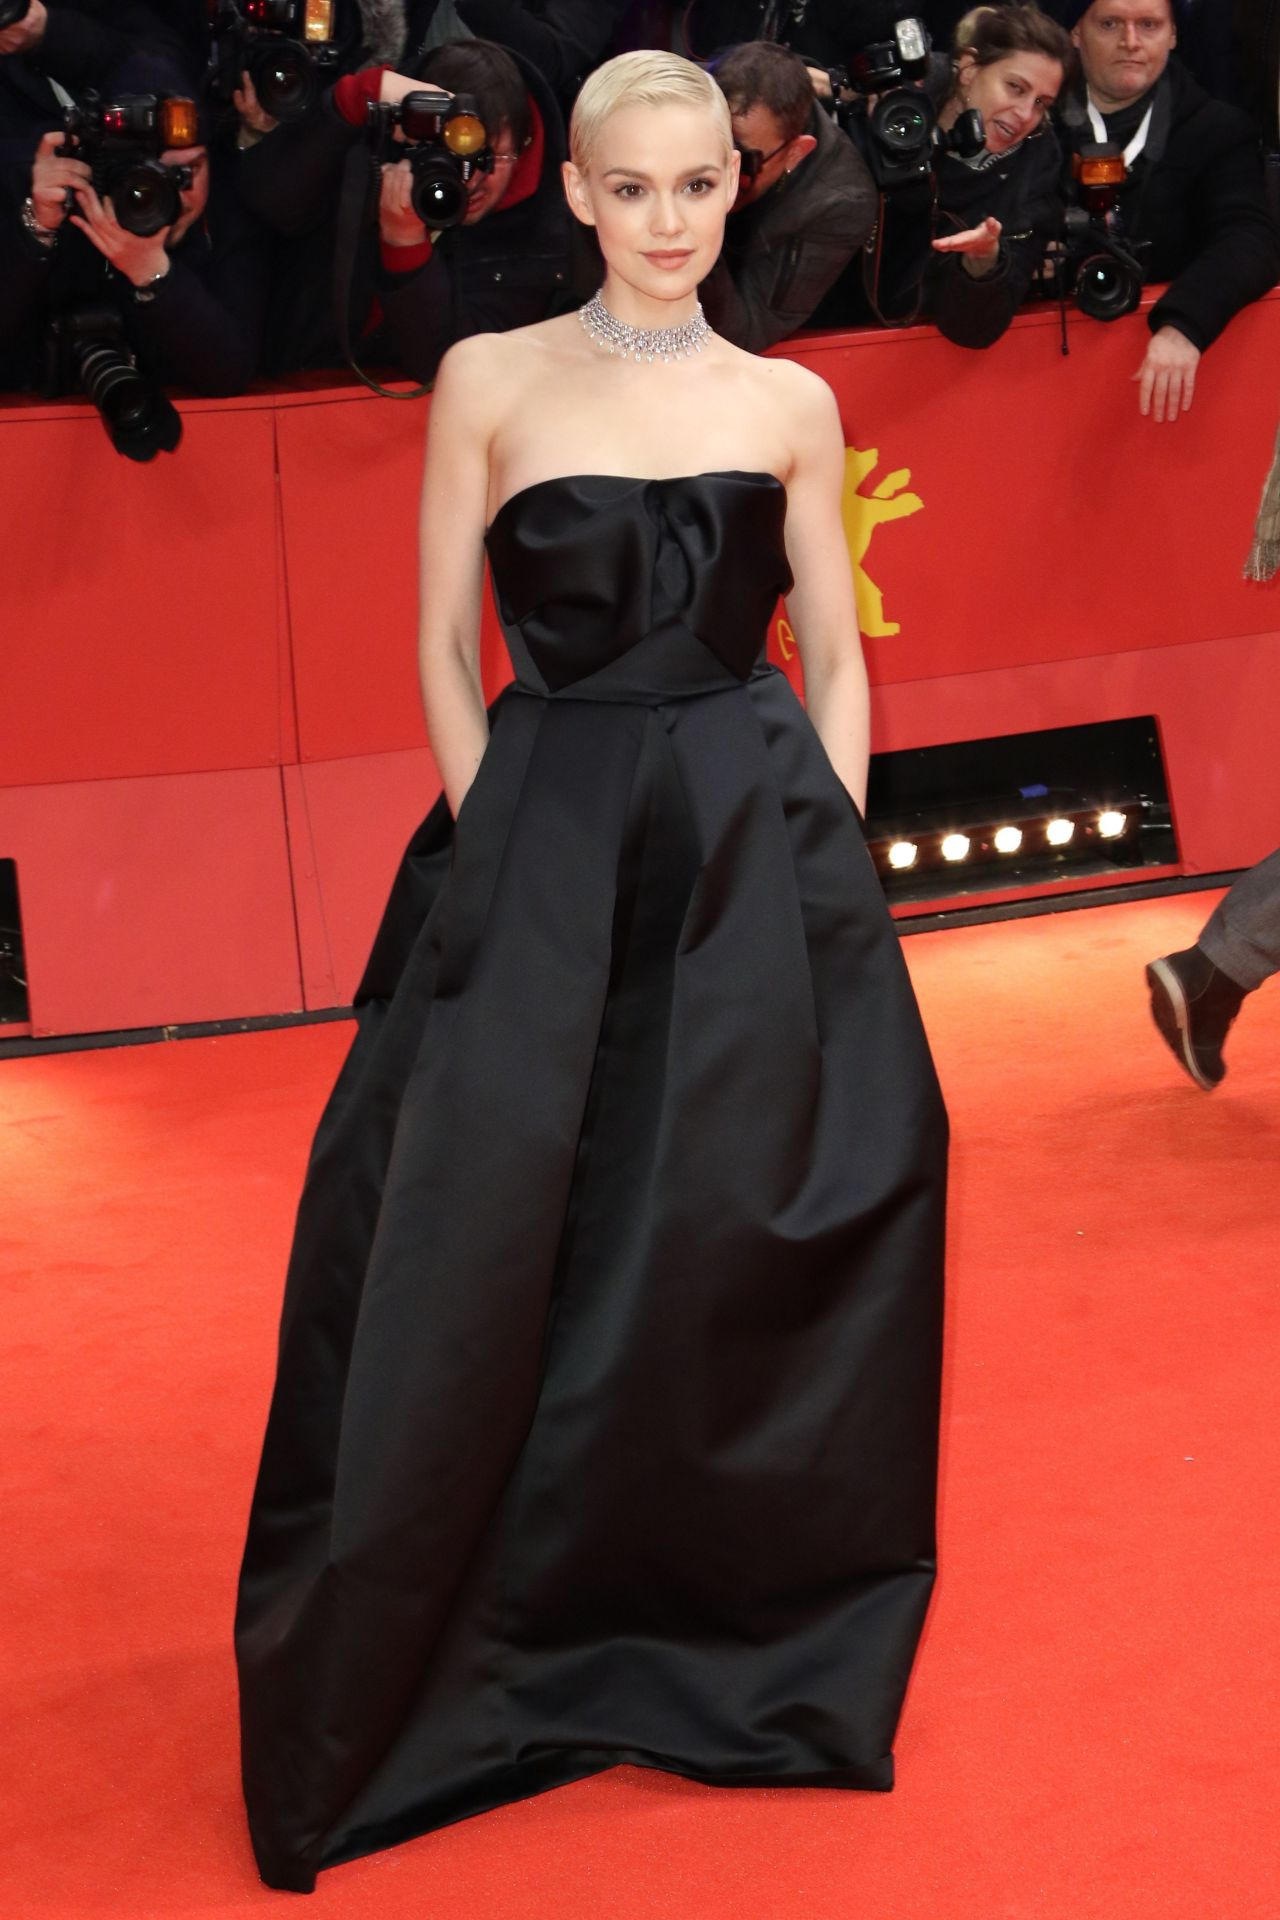 Star Trek Picard Premiere in Hollywood: Alison Pill